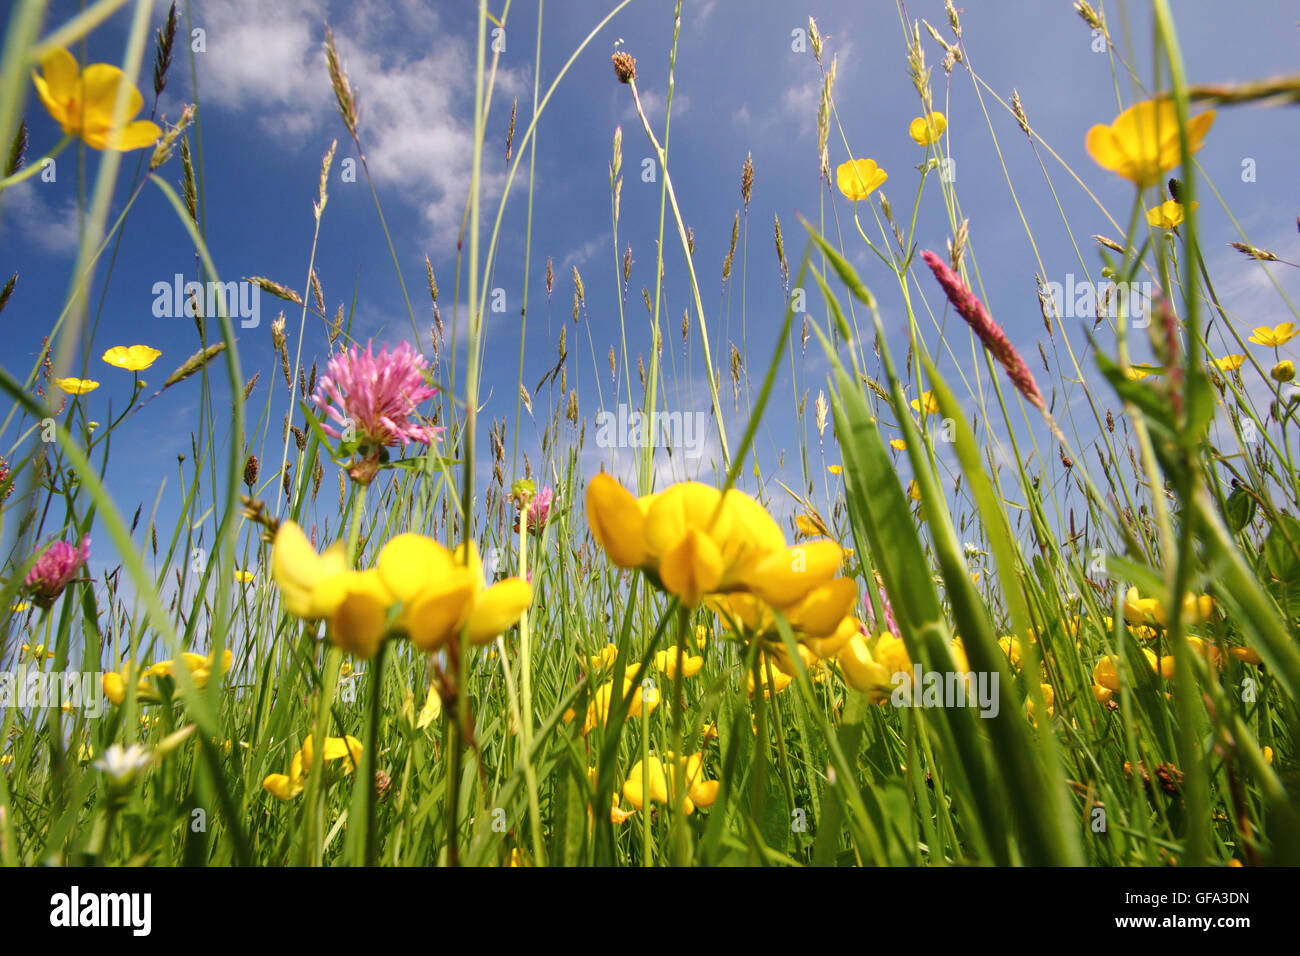 Wild flower rich, undisturbed hay meadows in the Wye Valley, Monmouthshire on a warm summer day - June, 2016 - Stock Image